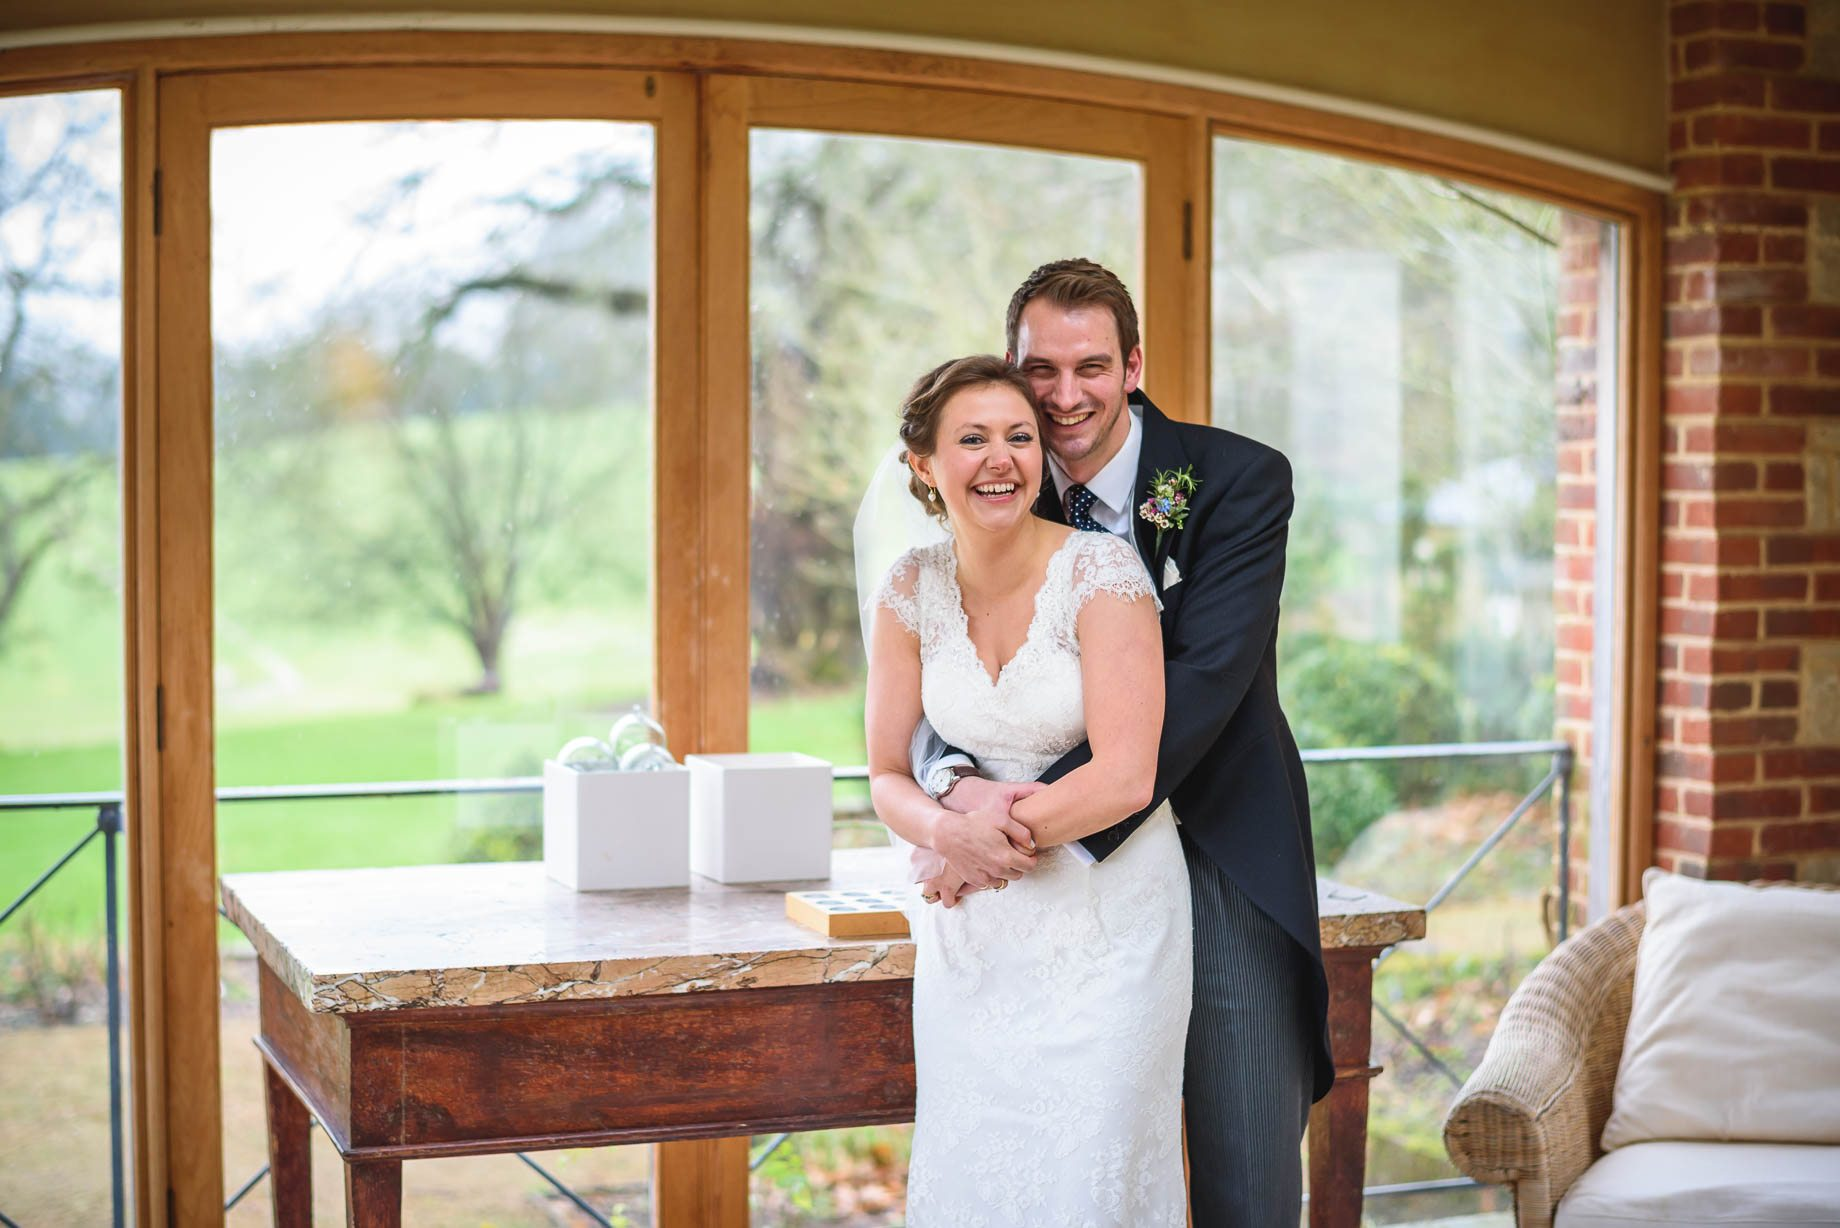 Bury Court Barn wedding photography - Ashley and Henry by Guy Collier Photography (69 of 188)